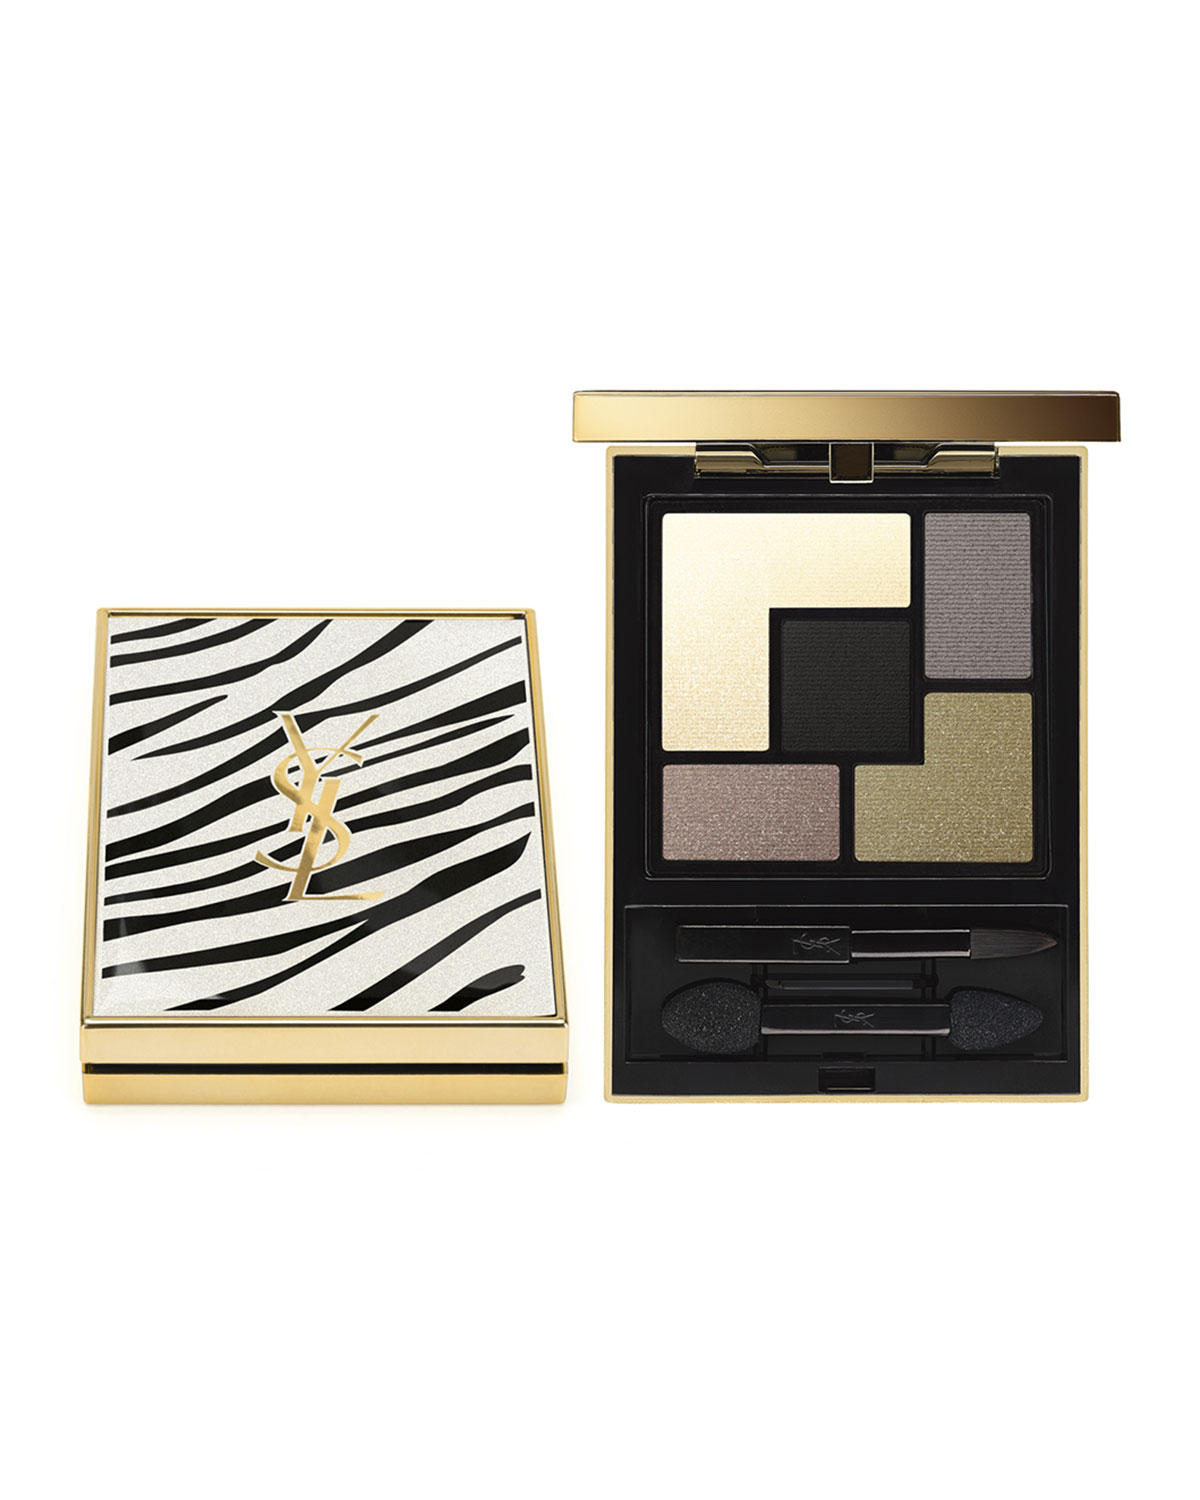 New Release YSL launched New Couture Palette Clash & White